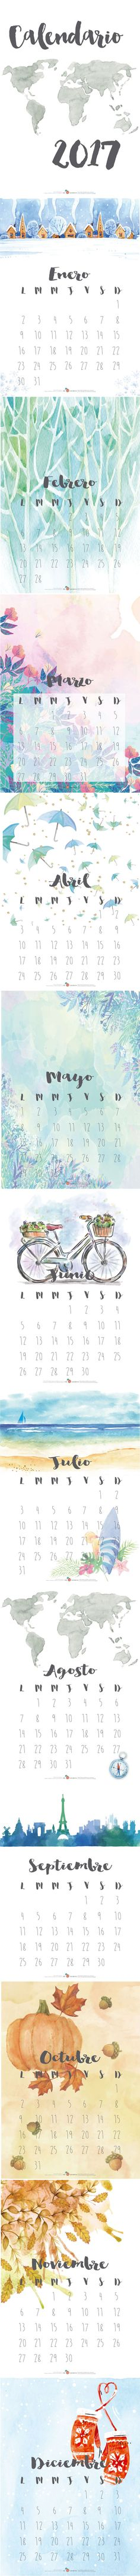 Calendario 2017 descargable gratuito. Disponible en www.miamandarina.es